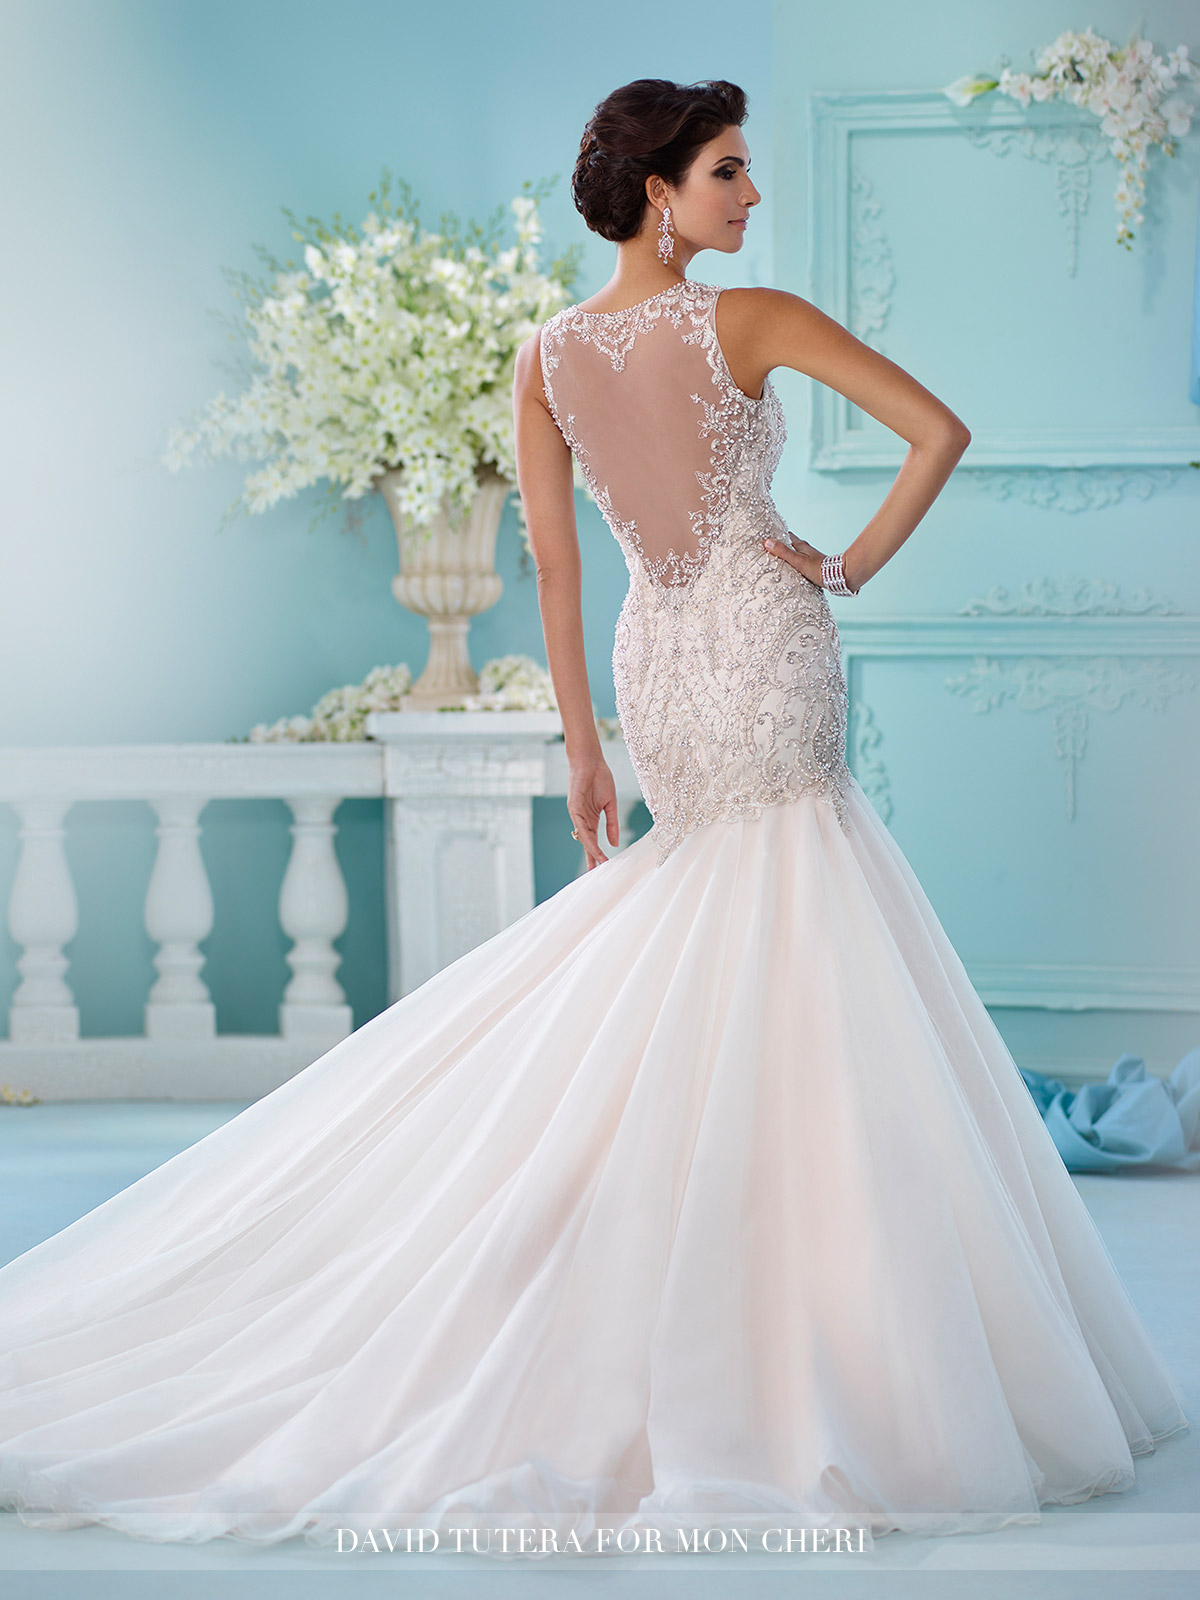 Attractive Trumpet Style Wedding Gown Ideas - All Wedding Dresses ...